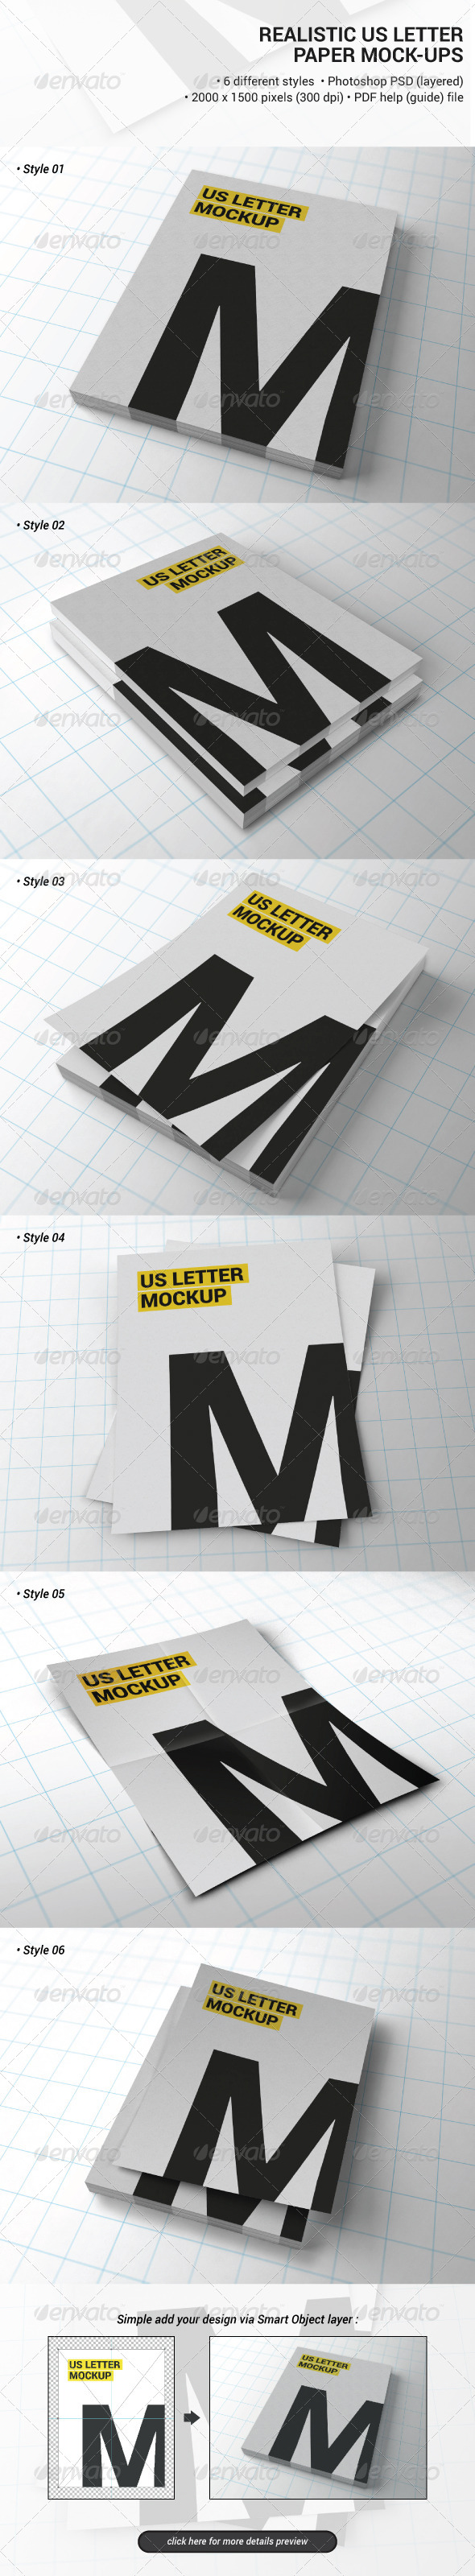 GraphicRiver Realistic Us Letter Paper Mock-ups 7103678